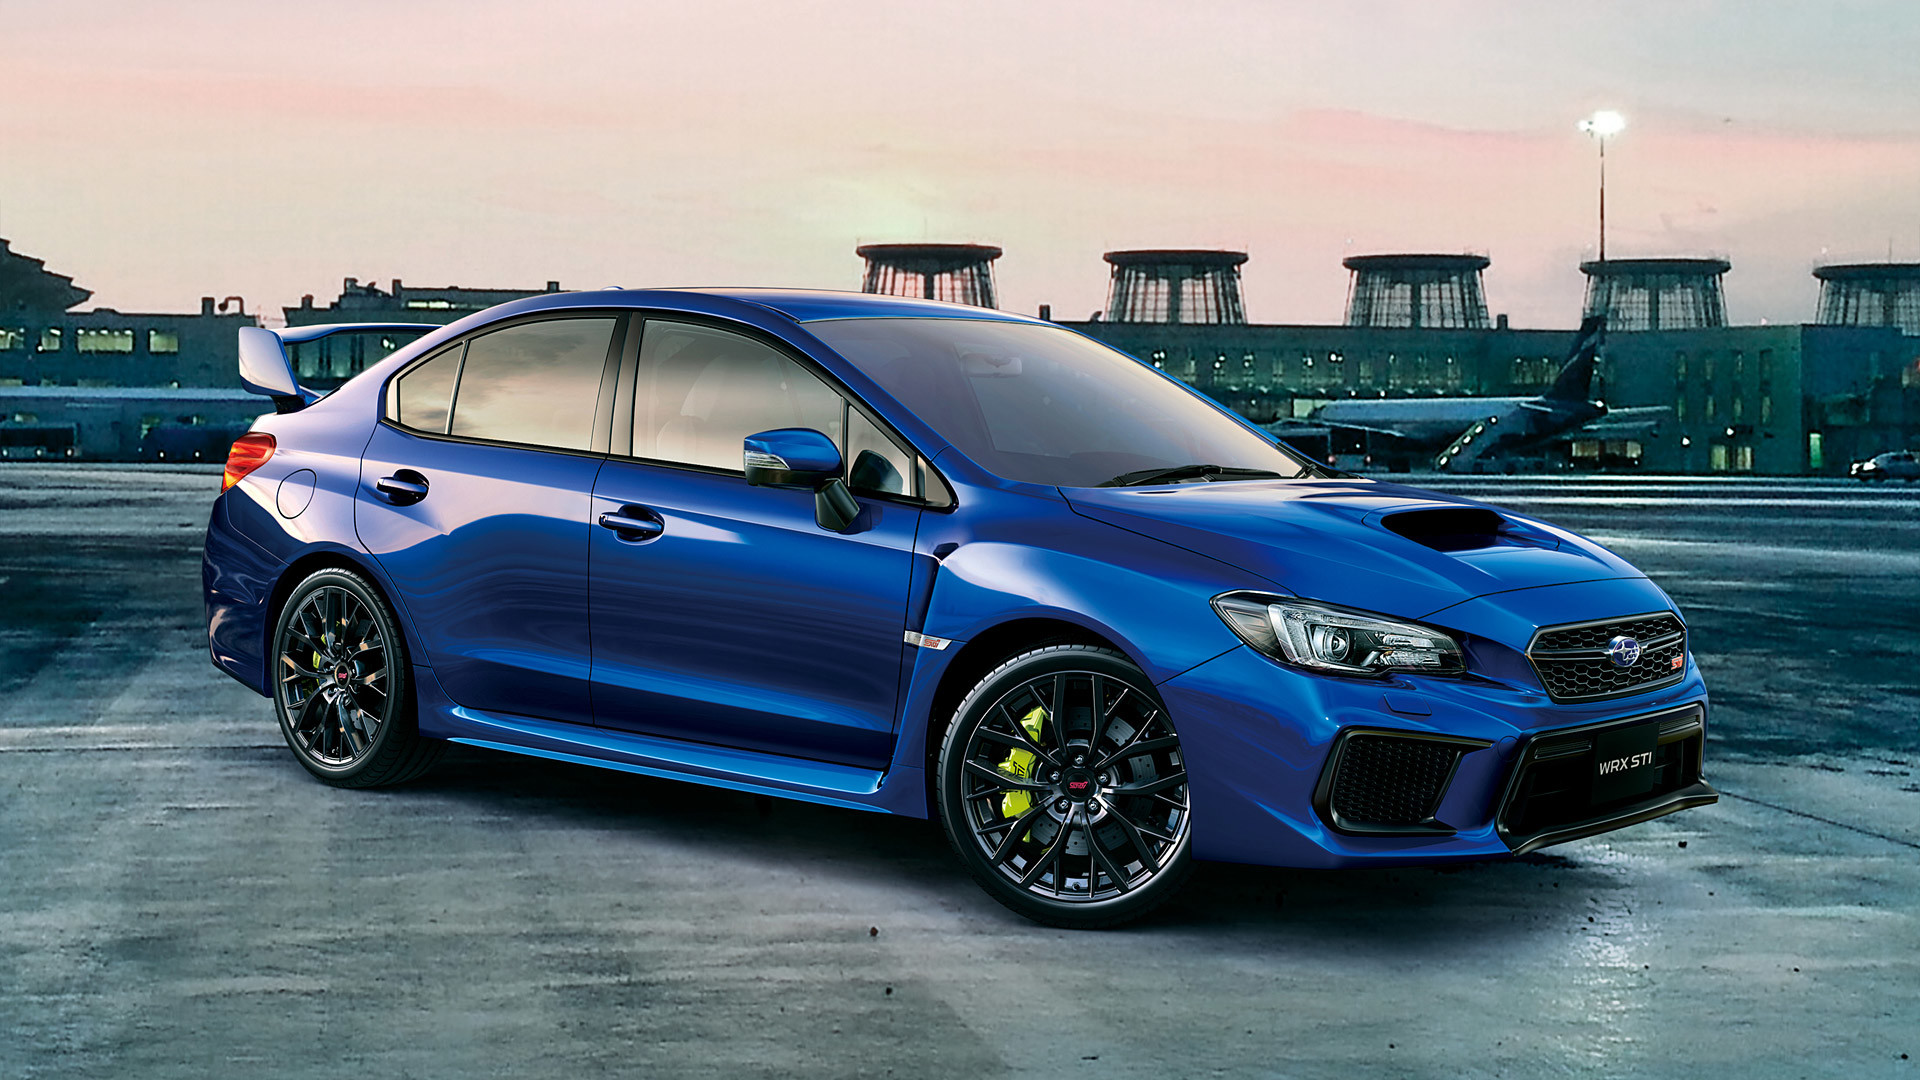 subaru wrx sti wallpaper 63 images. Black Bedroom Furniture Sets. Home Design Ideas